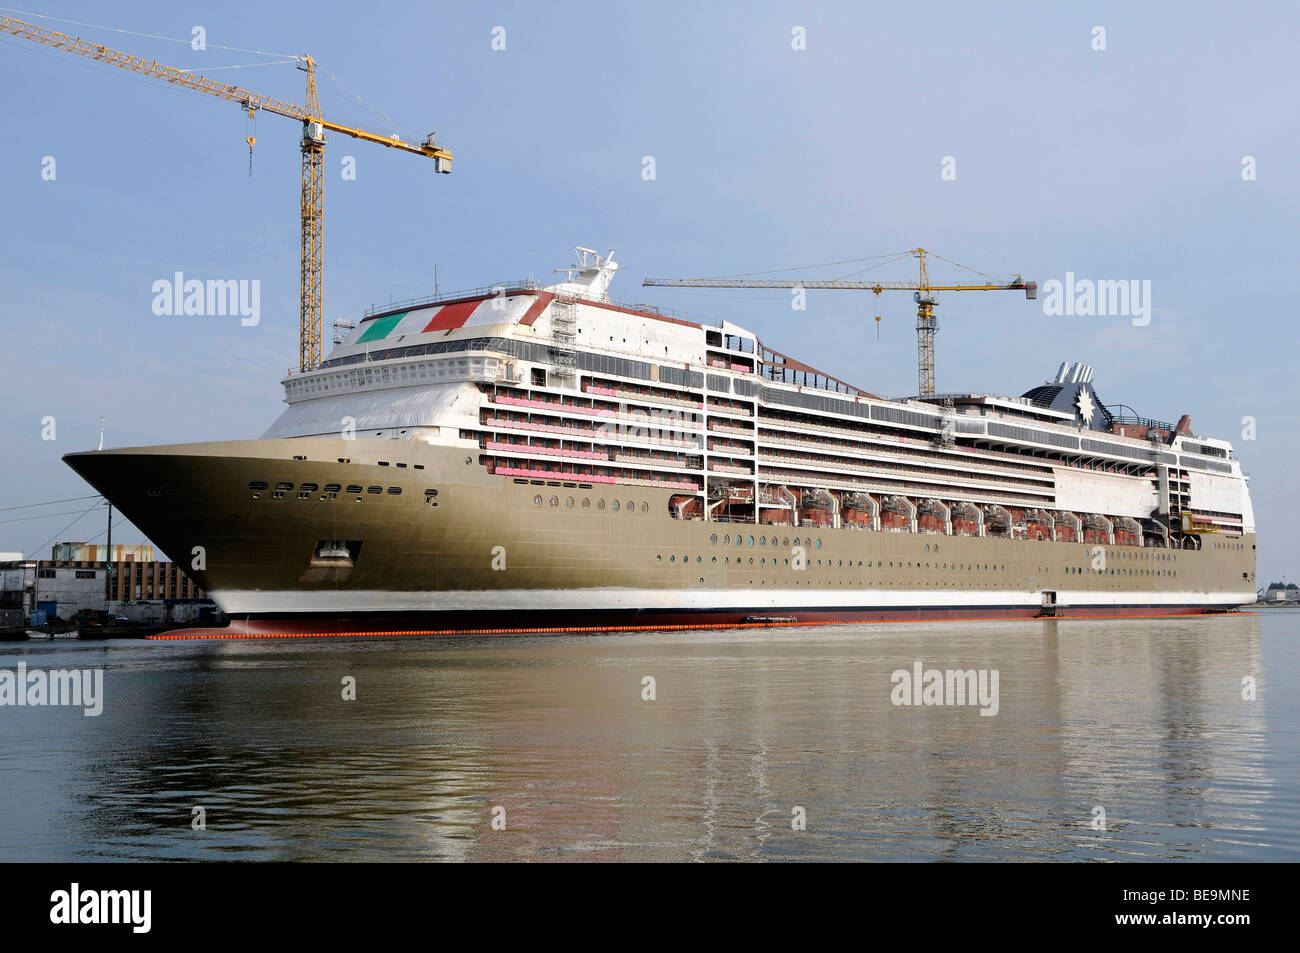 St-Nazaire (44) : Cruise ship MSC Magnifica. - Stock Image